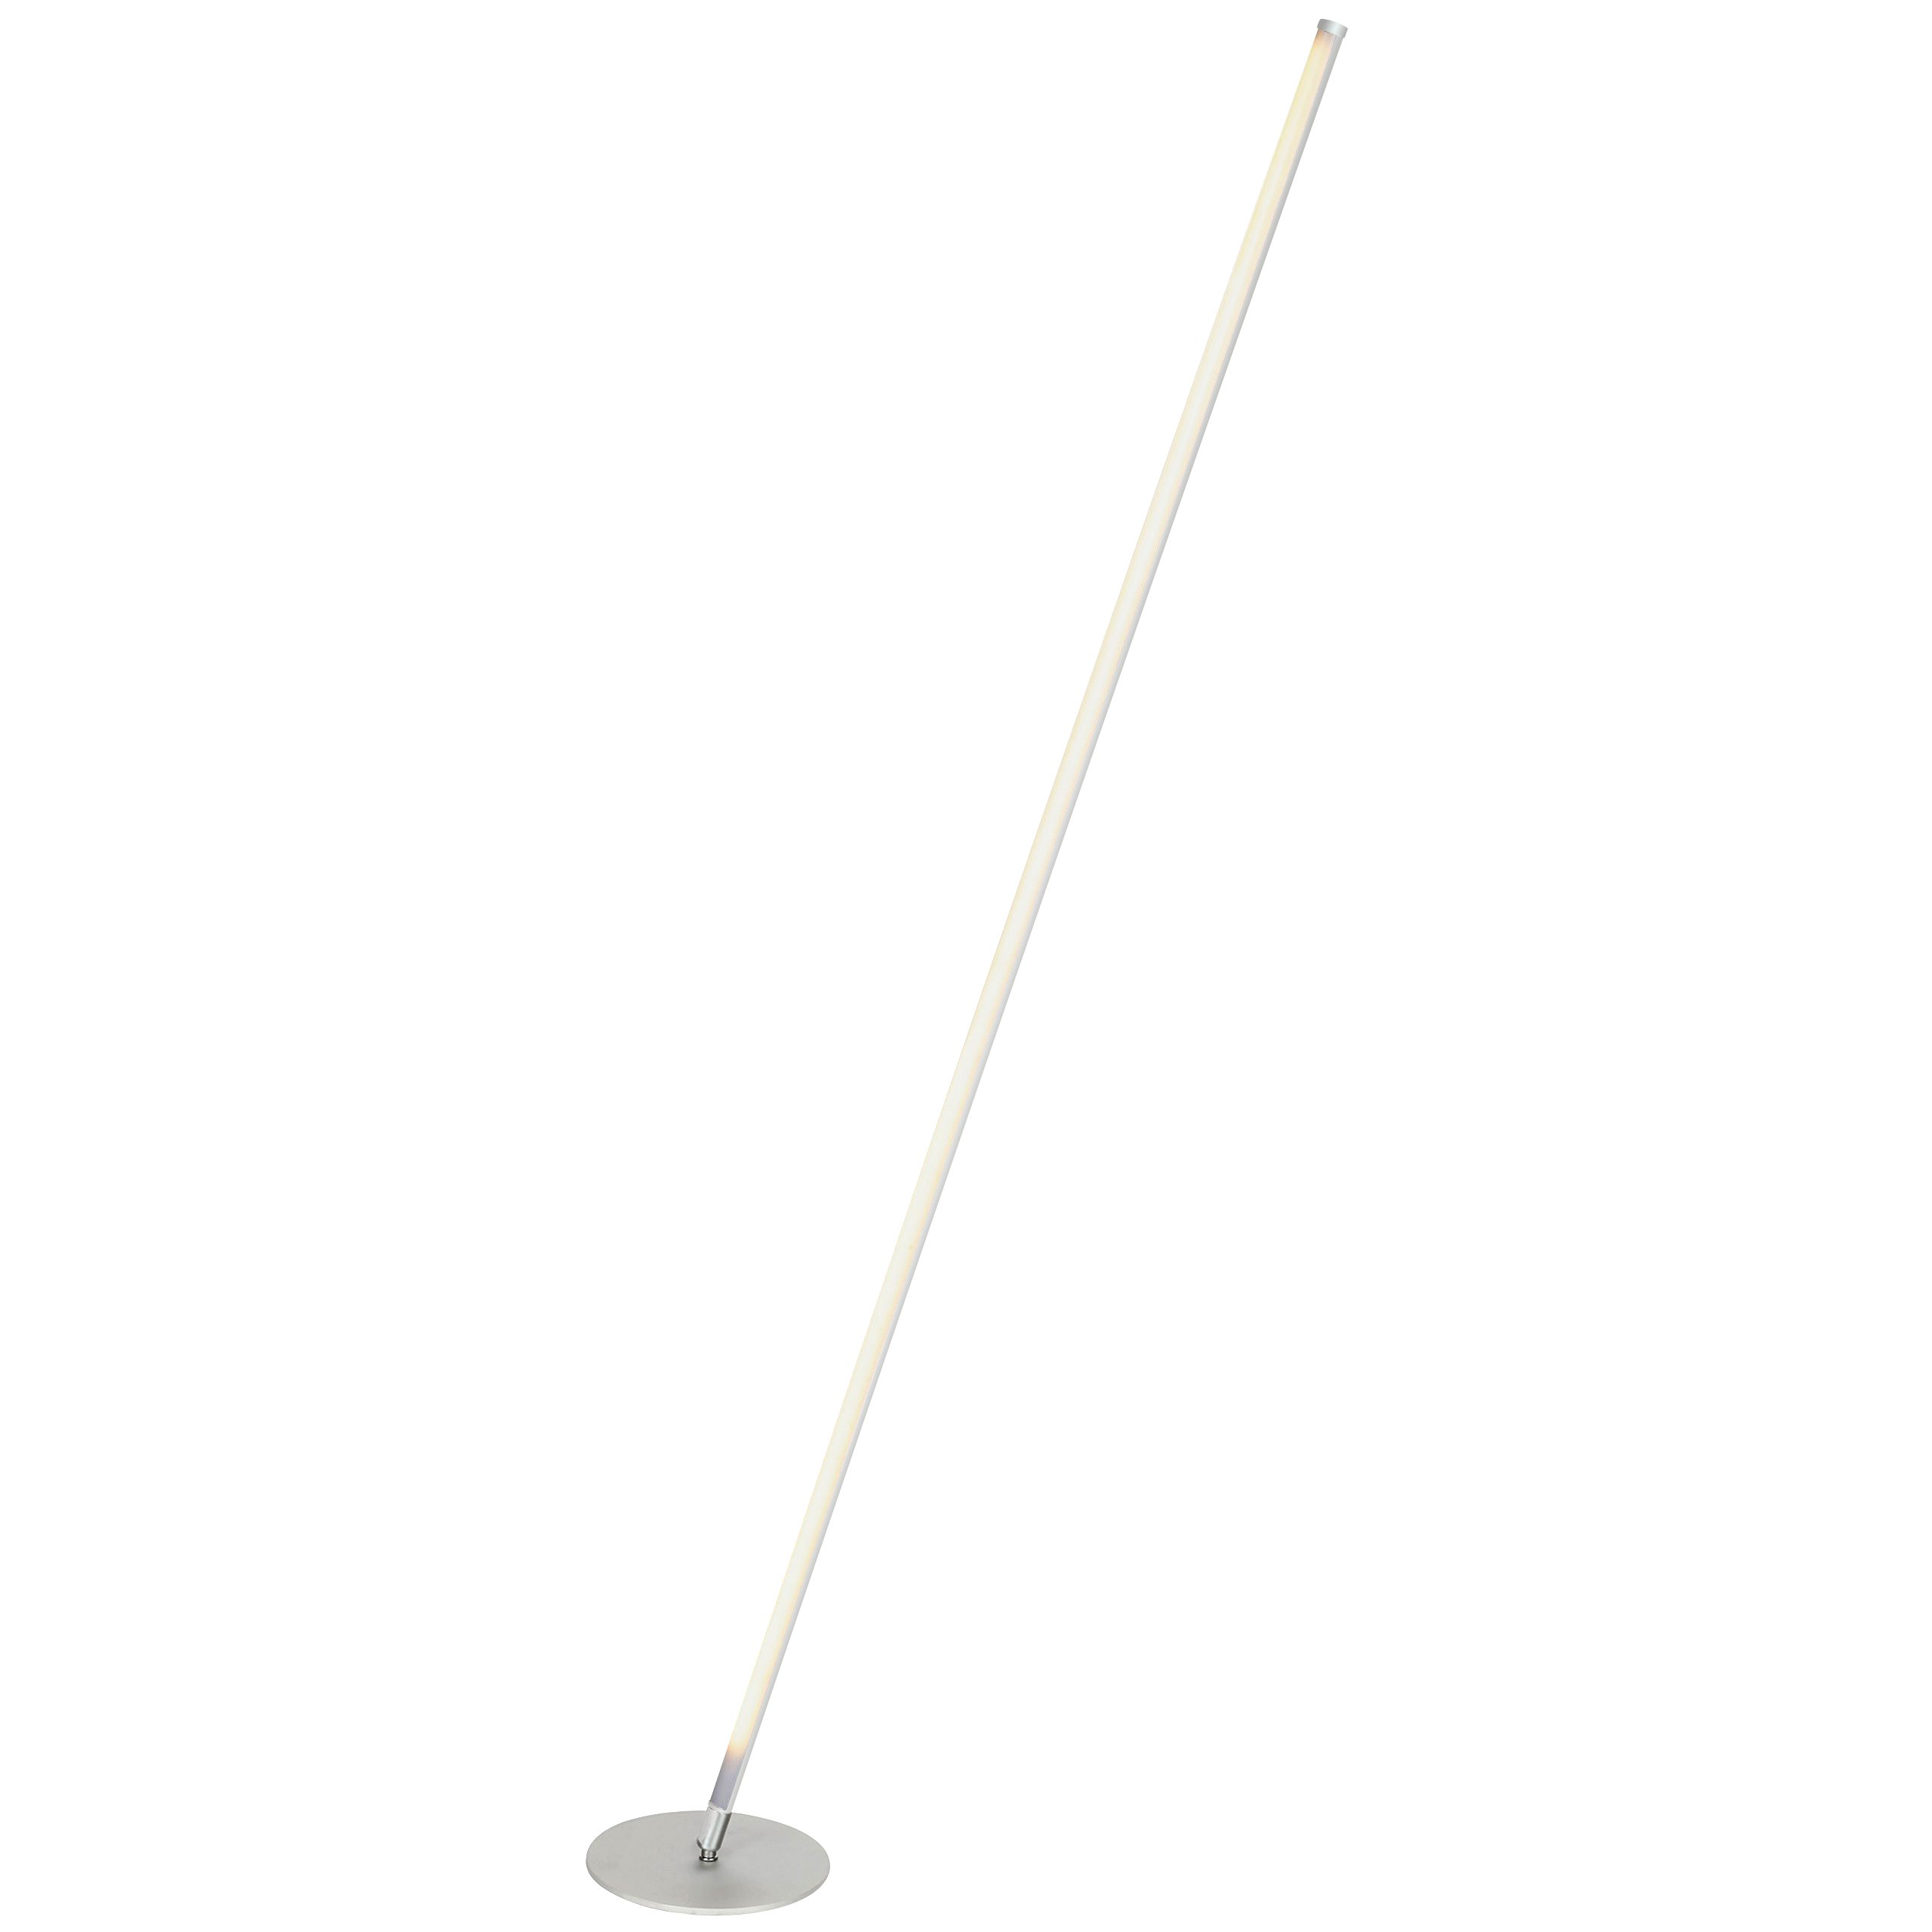 Brightech Tilt LED Floor Lamp for Living Rooms - Get Compliments: Modern Standing Pole Light for Family Rooms, Bedrooms & Offices - Bright, Dimmable Contemporary Lighting - Platinum Silver